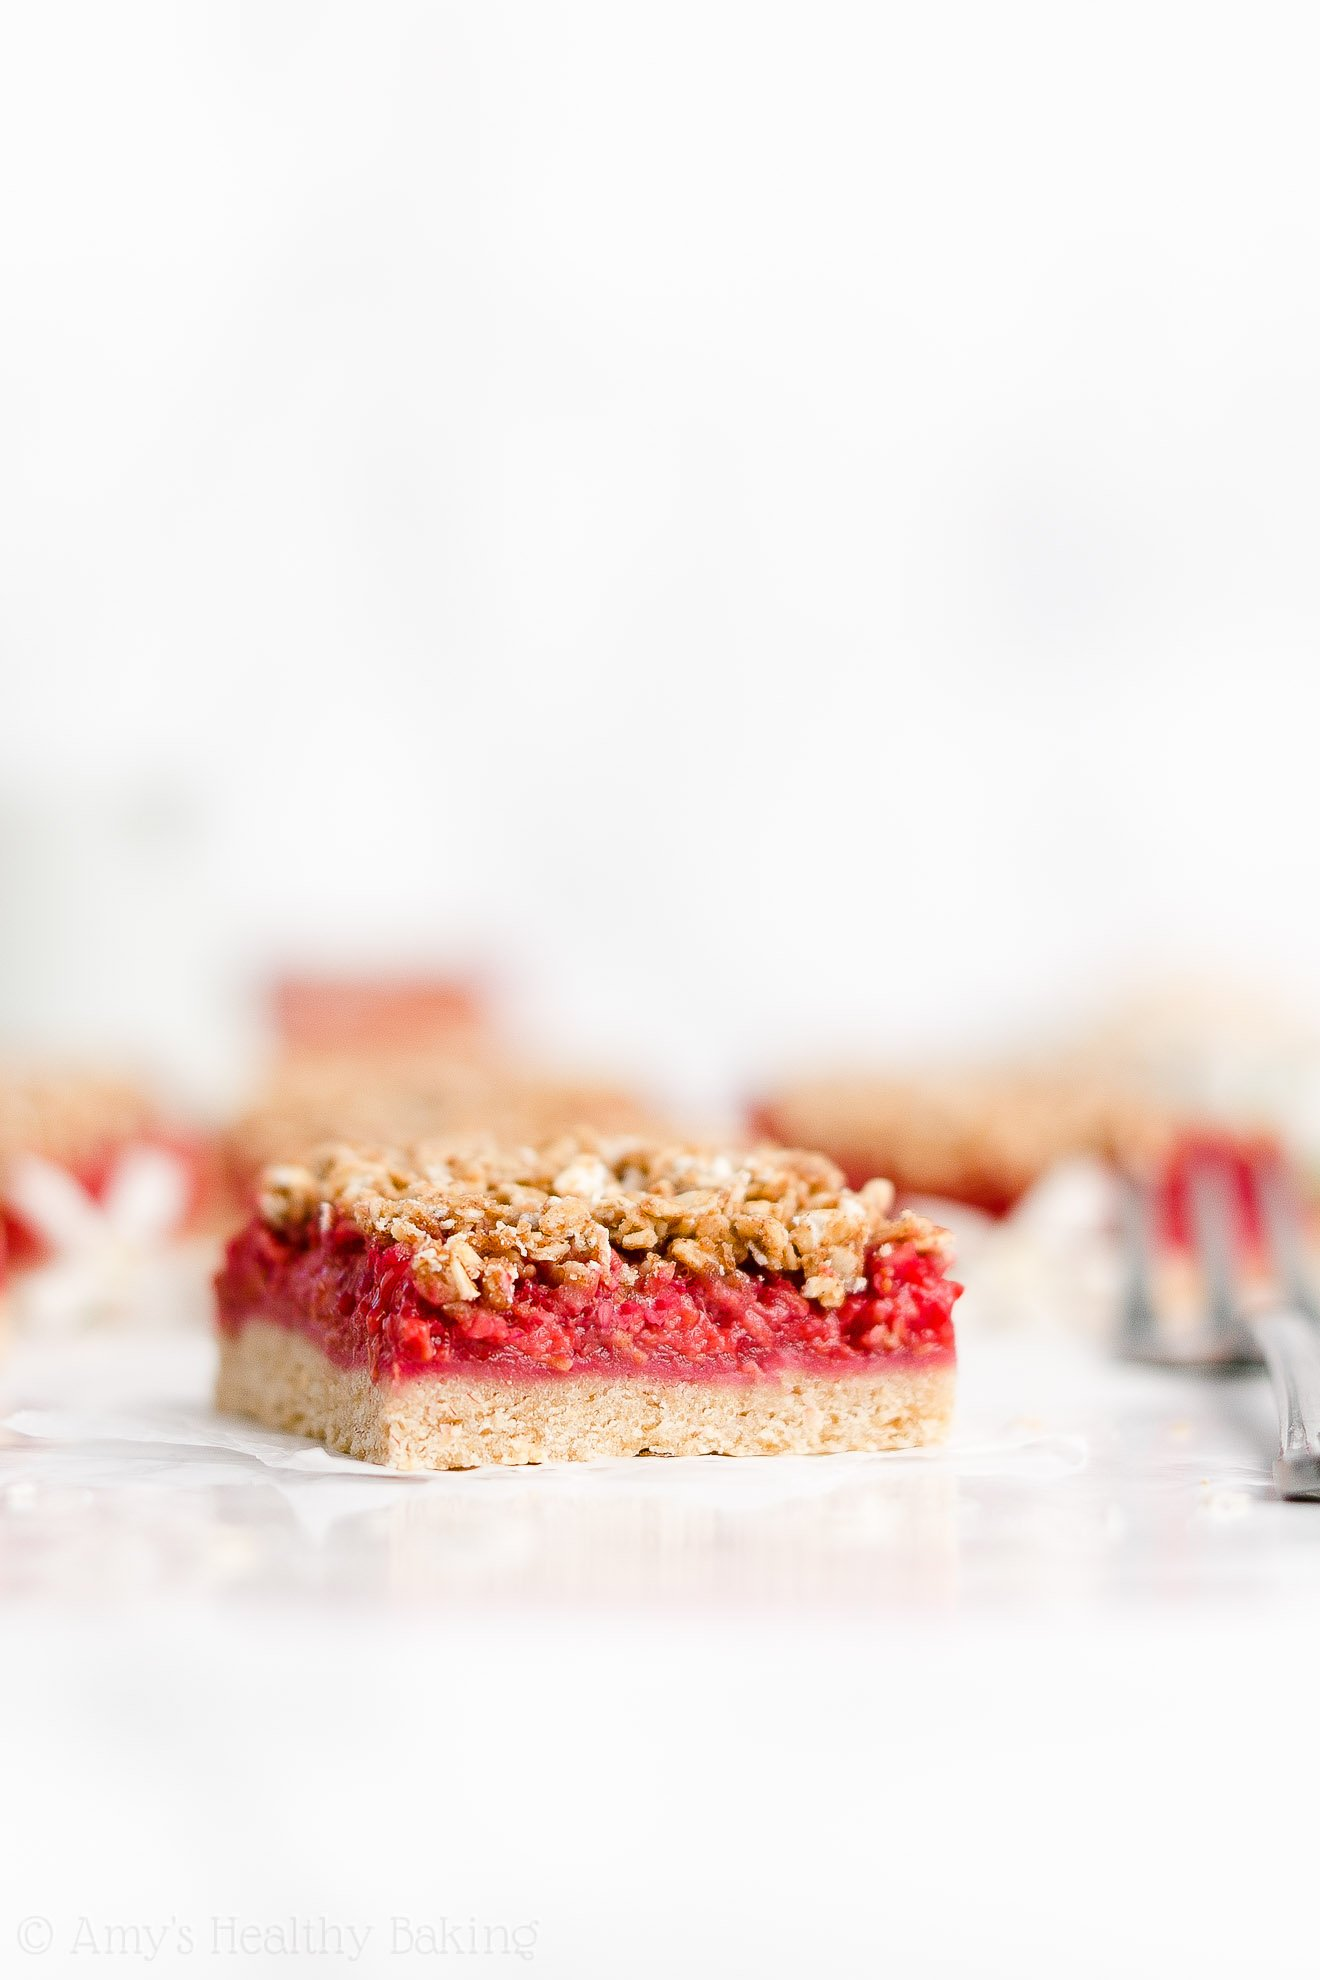 Easy Healthy Low Fat Gluten Free Egg Free Fresh Raspberry Oat Crumble Bars